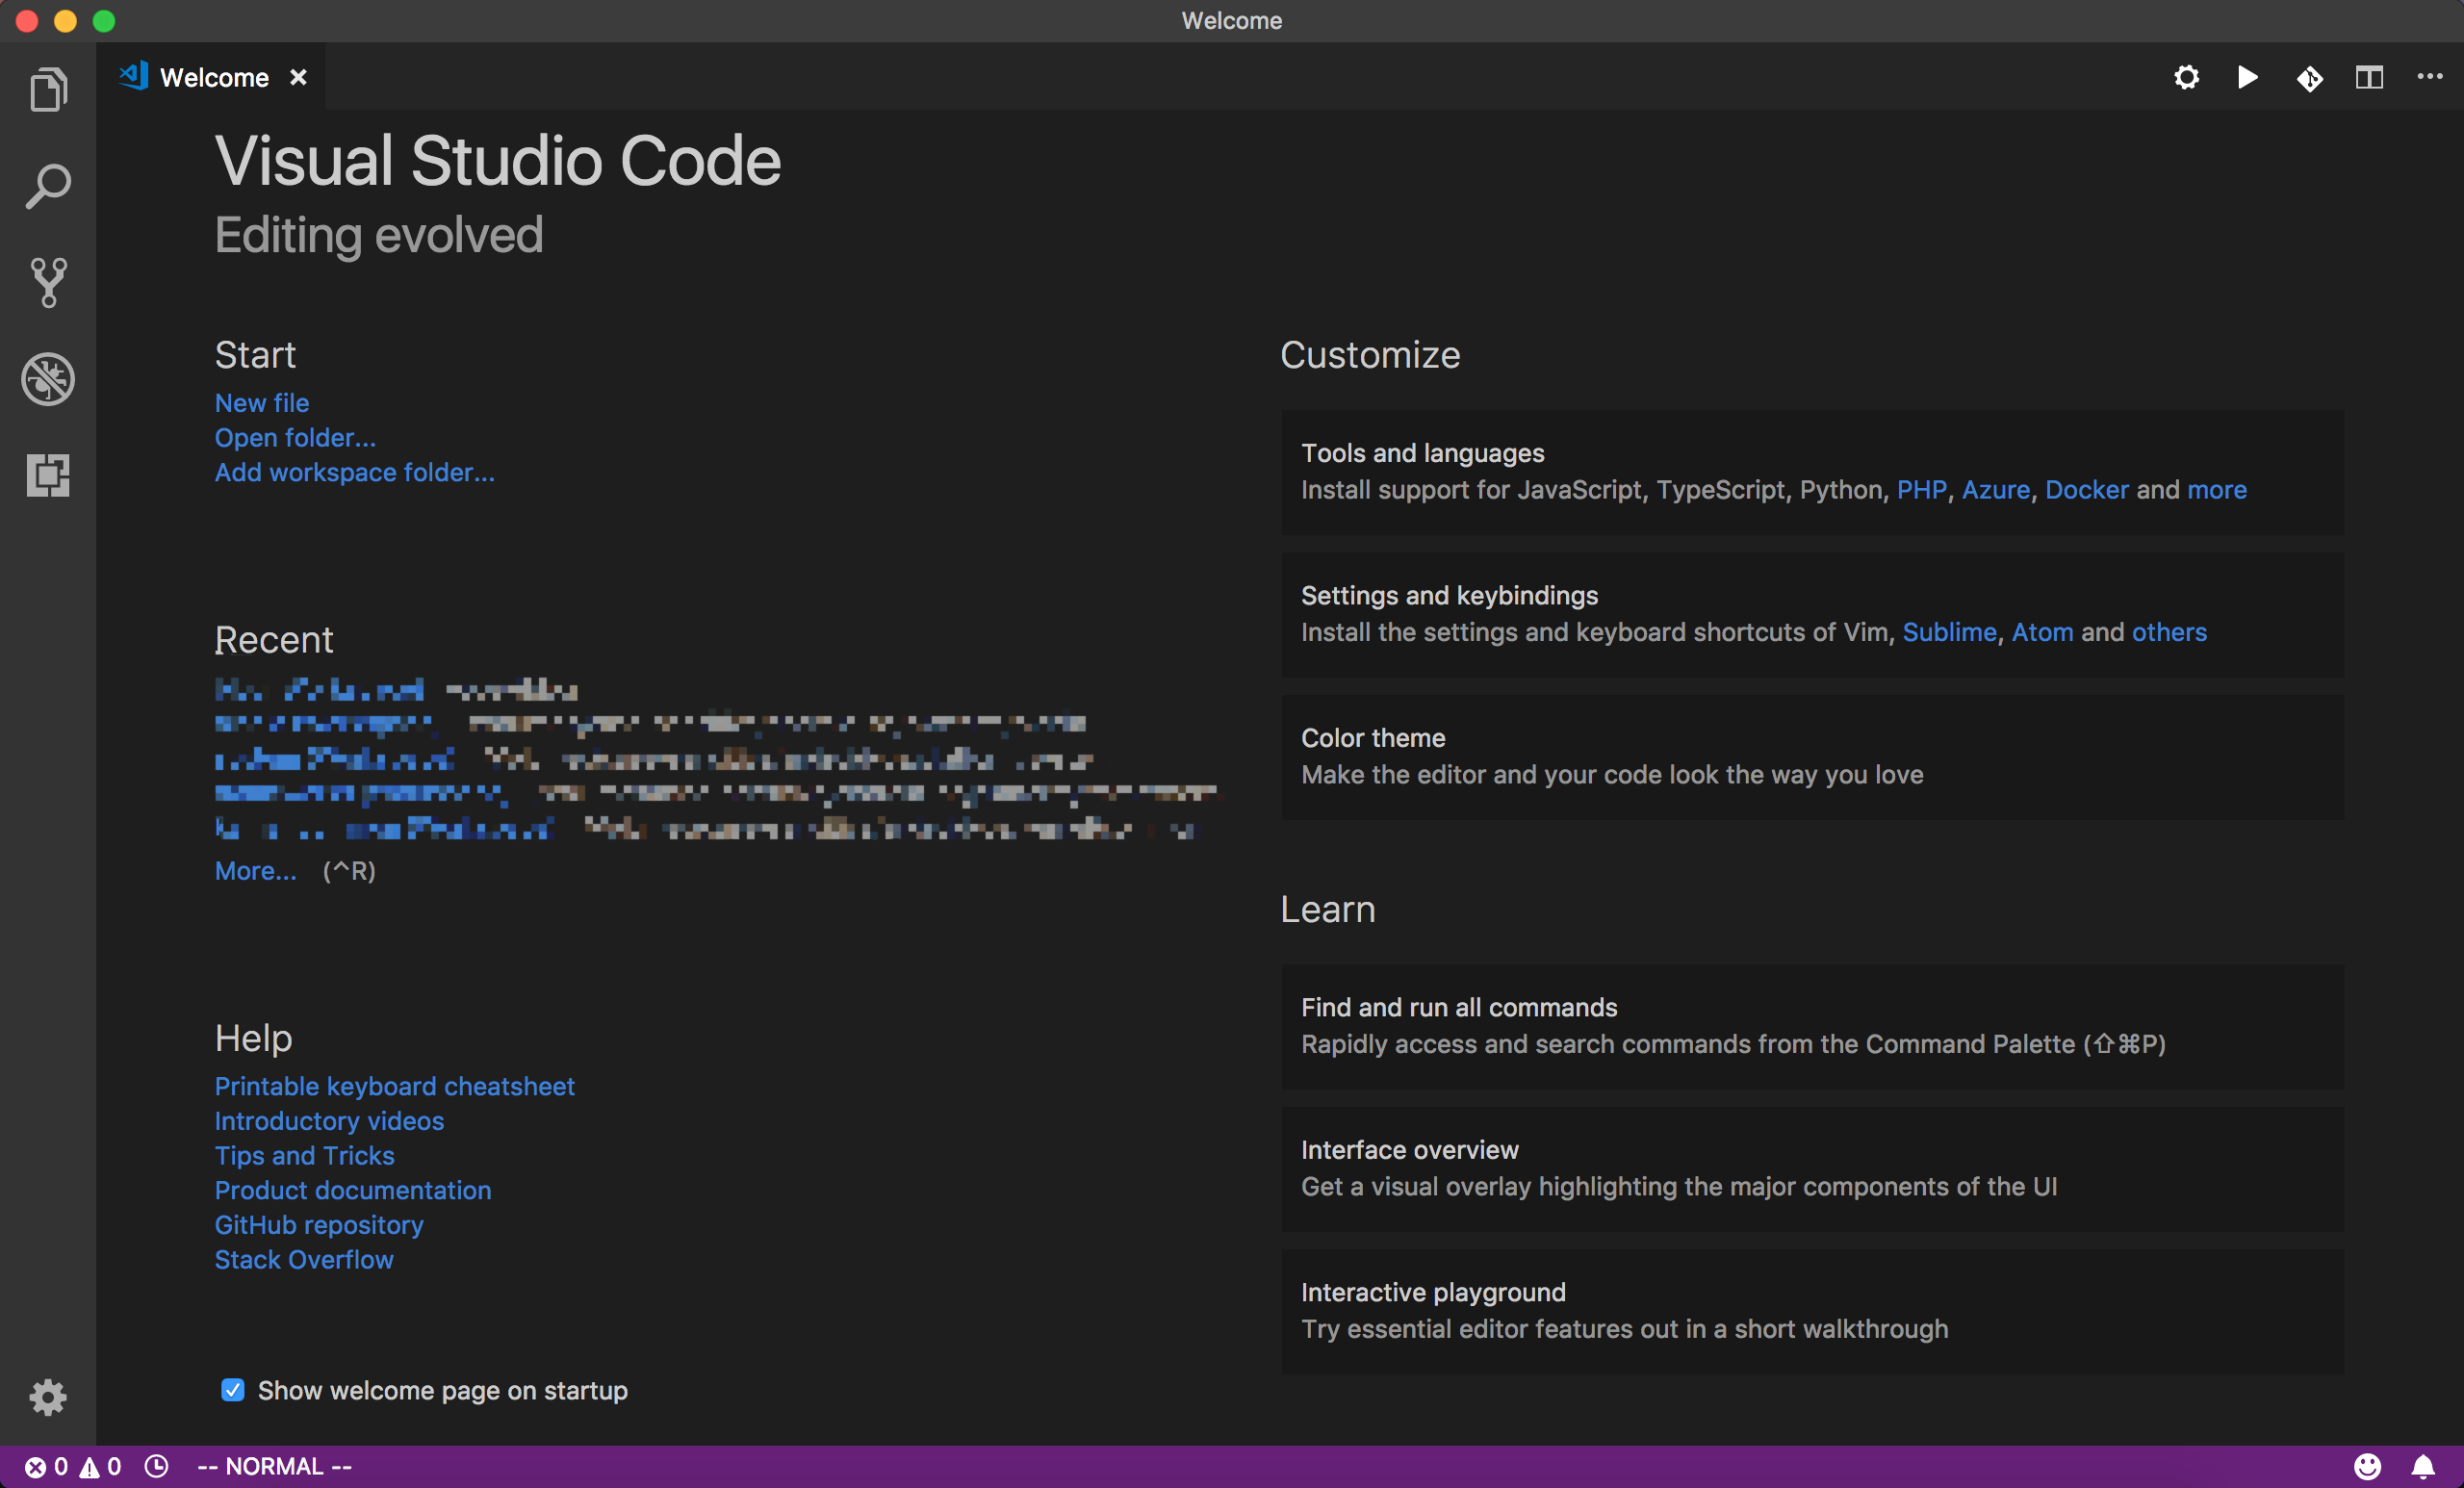 vscode-welcome